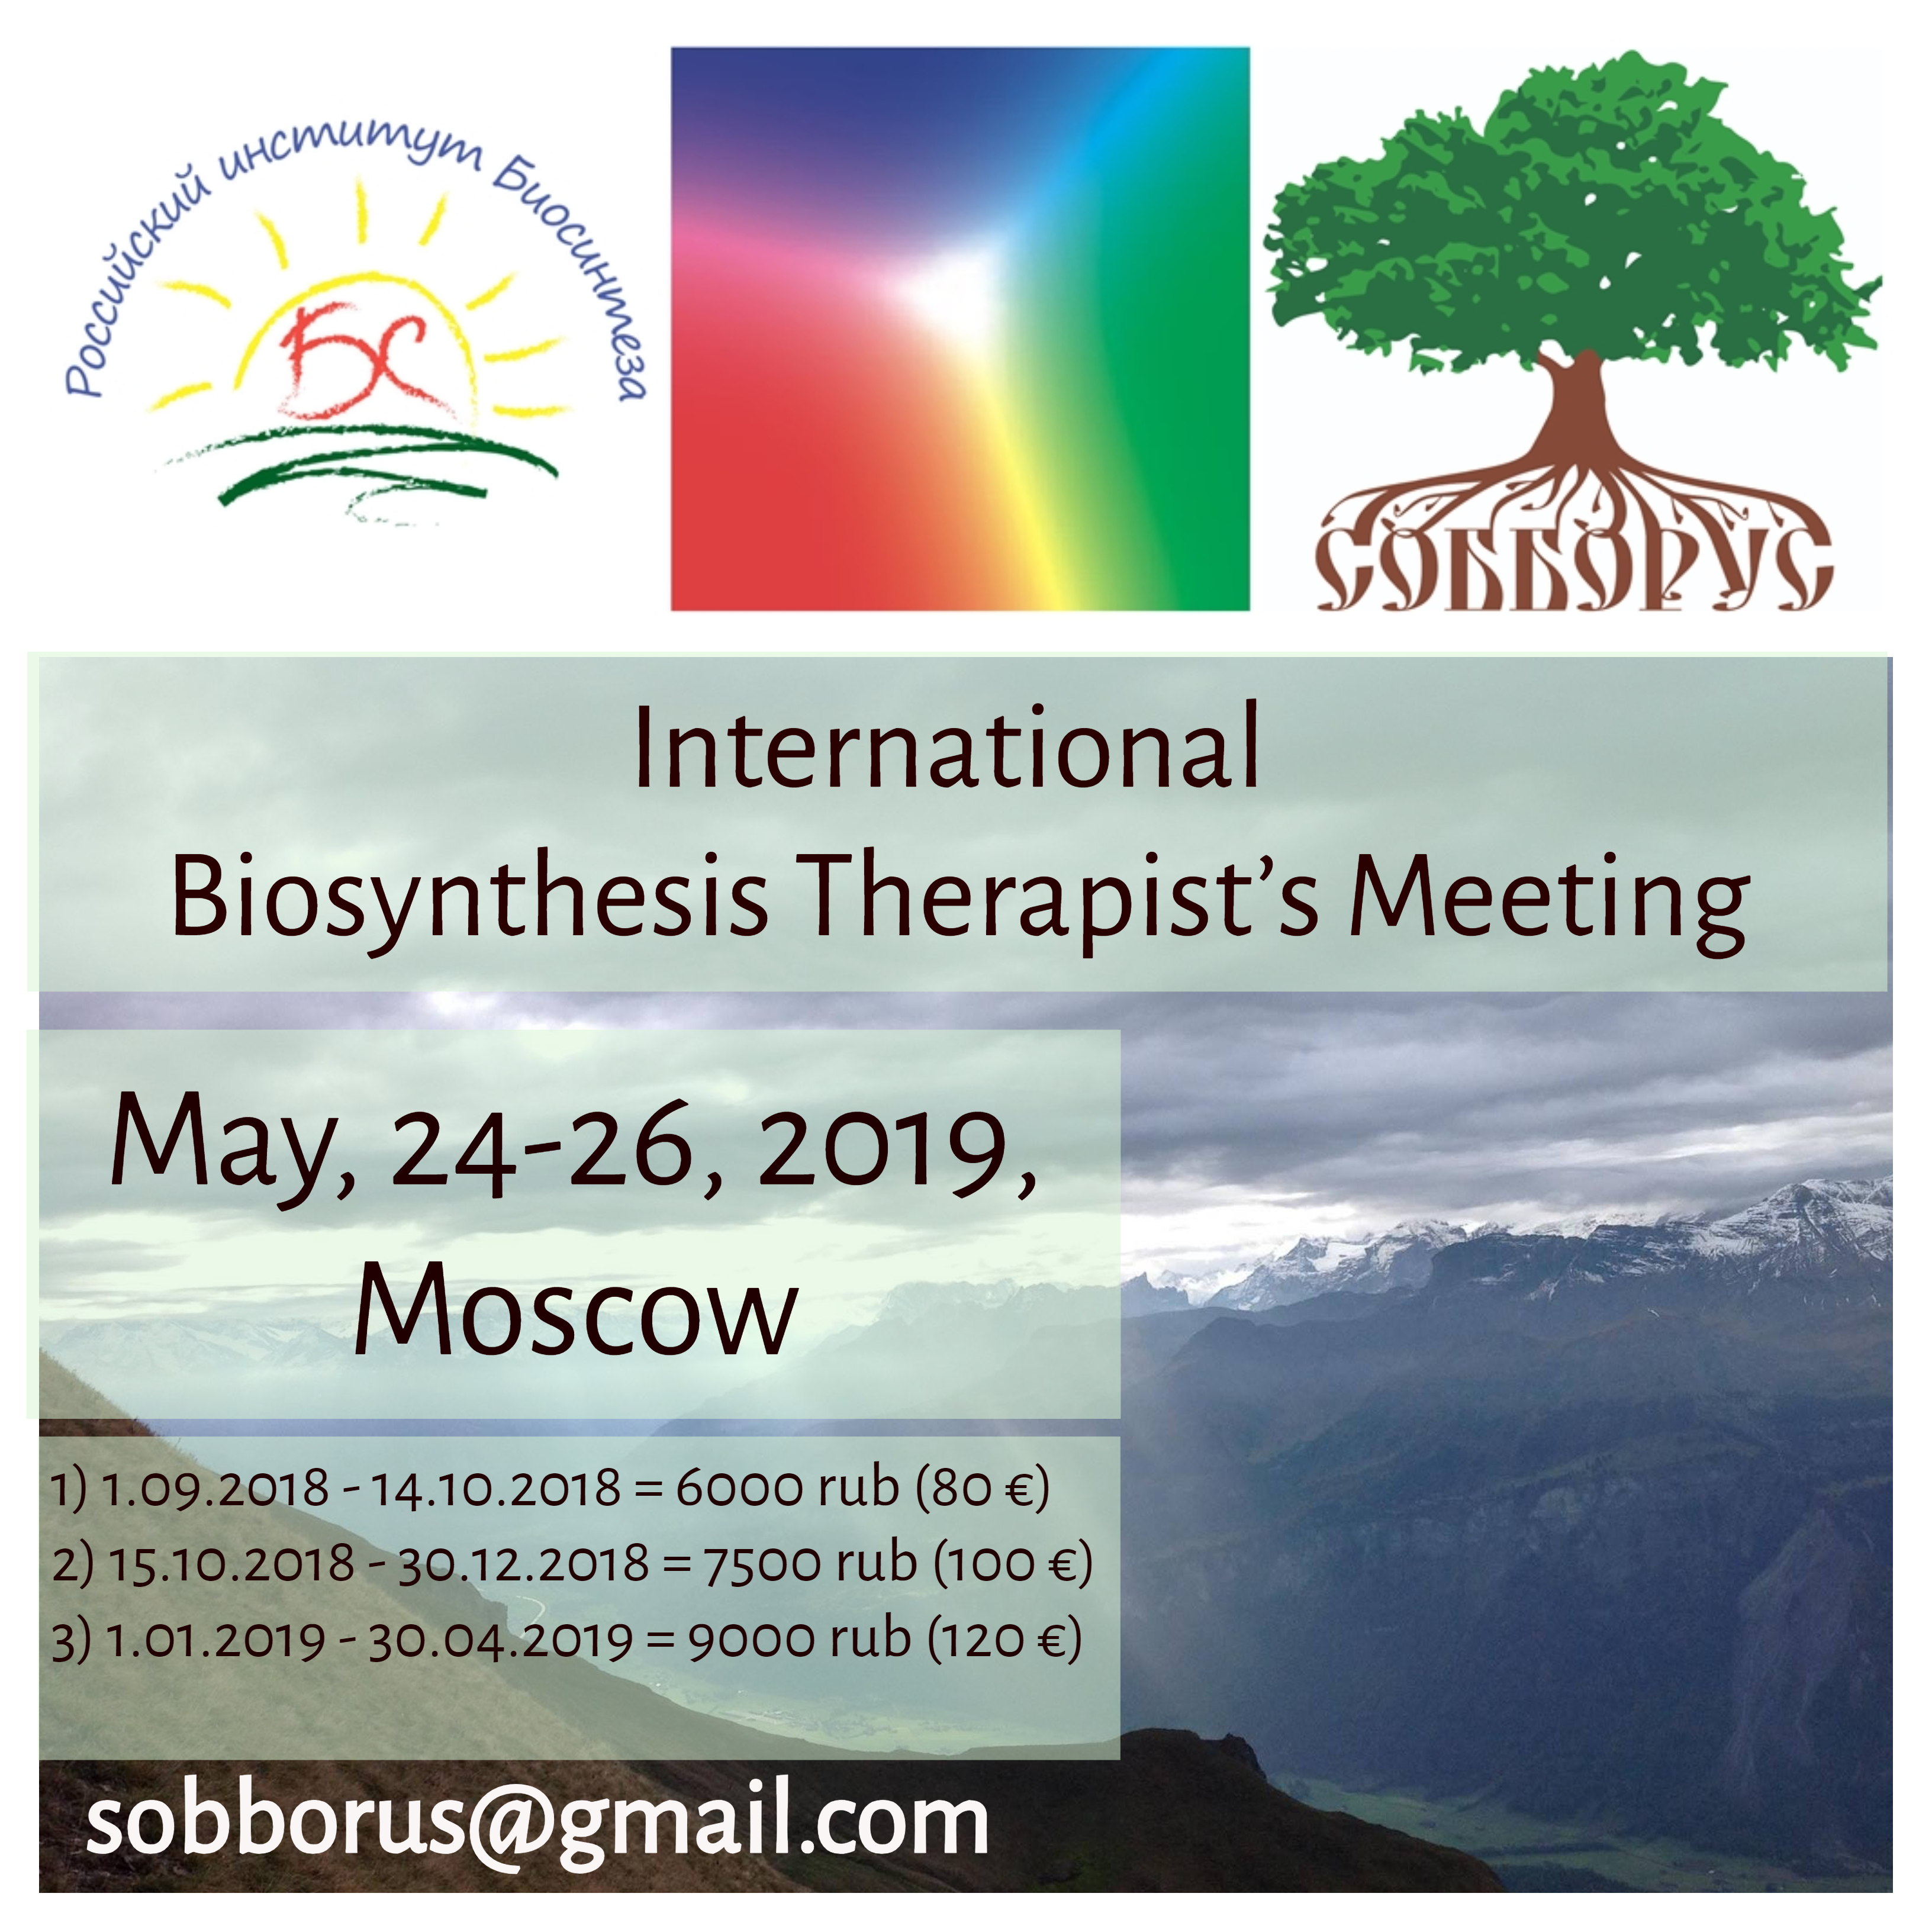 International Biosynthesis Therapist's Meeting